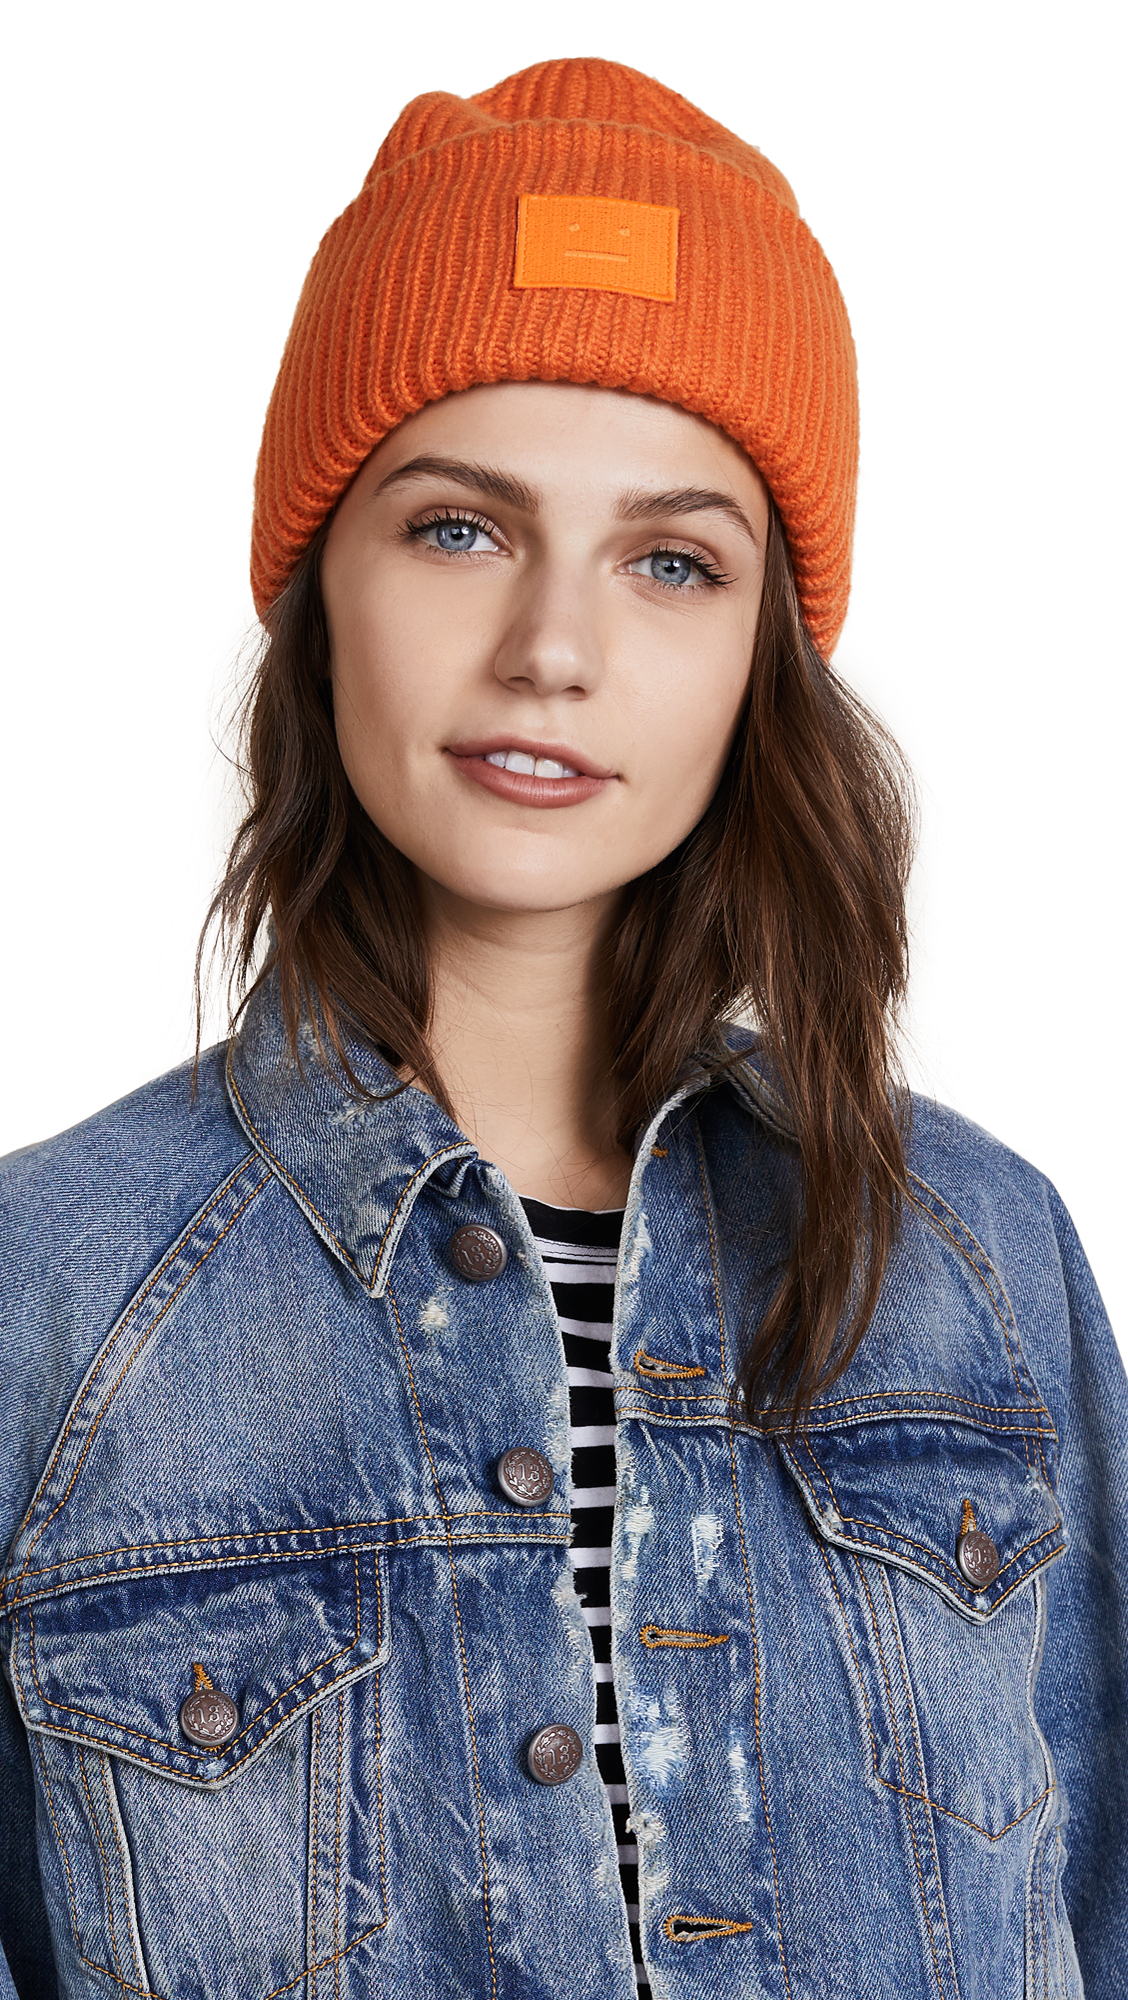 Acne Studios Pansy S Face Hat - Geranium Orange